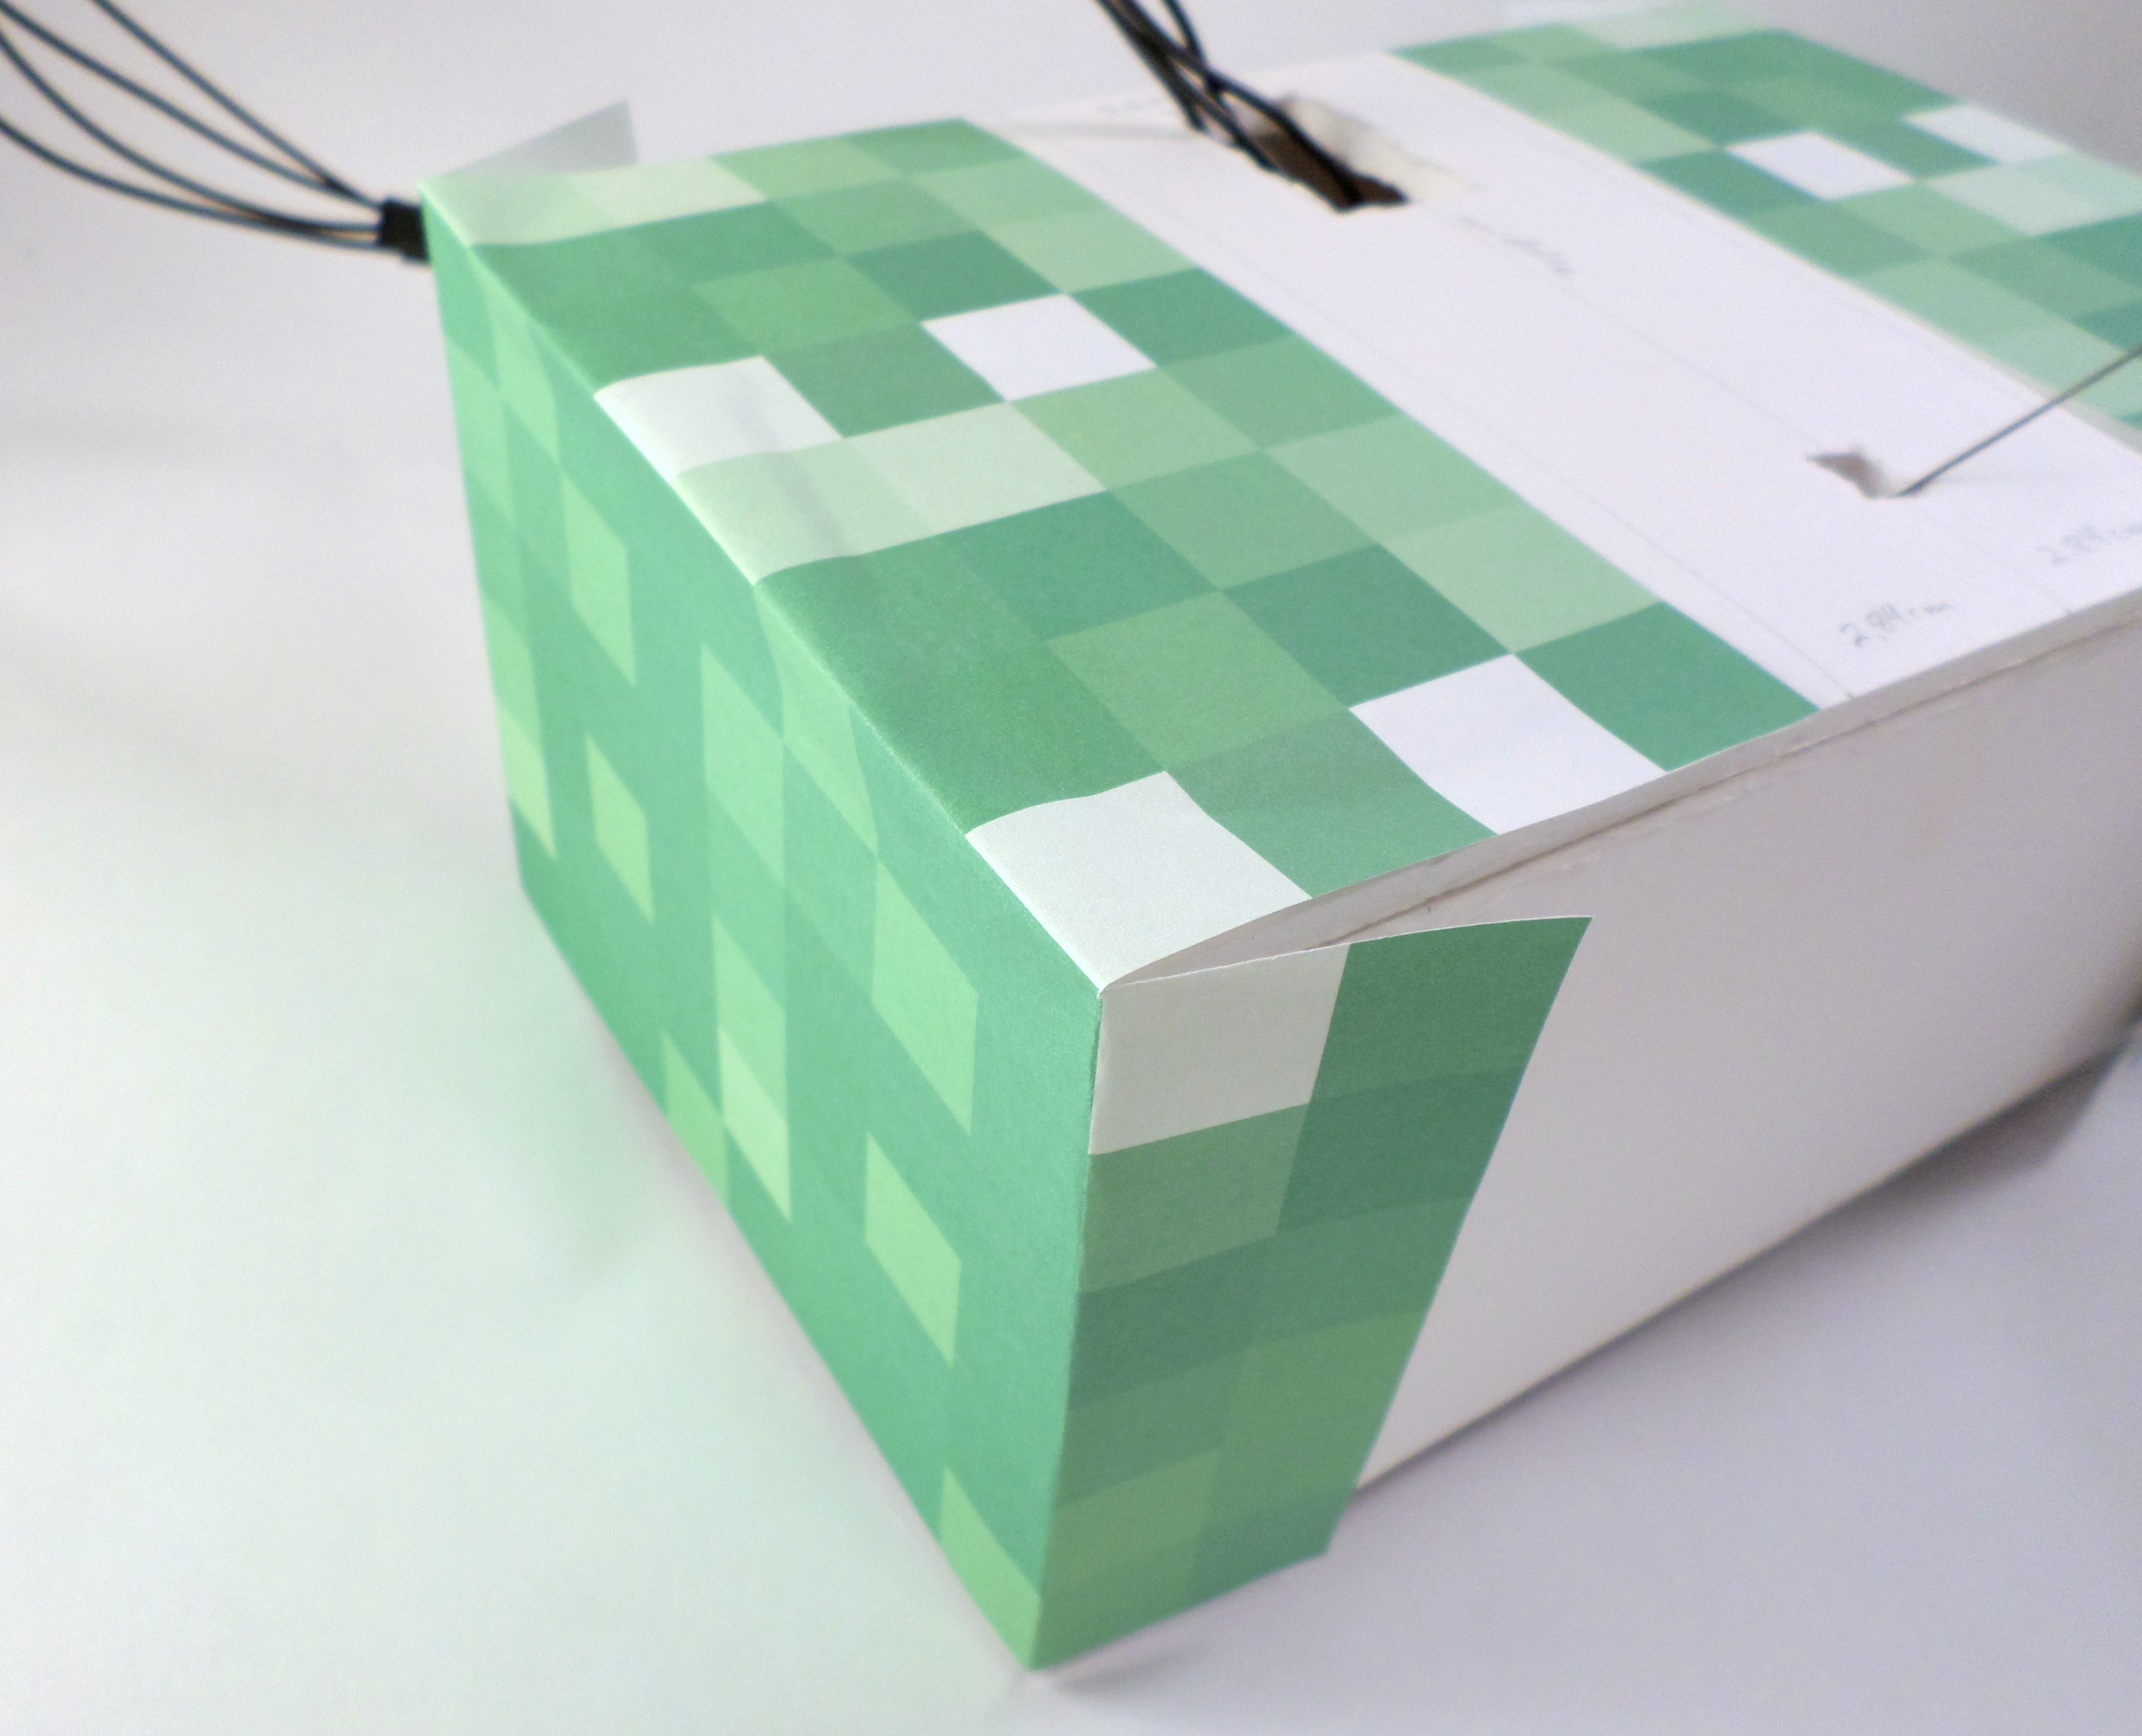 Picture of Putting the Creeper Skin on the Feet